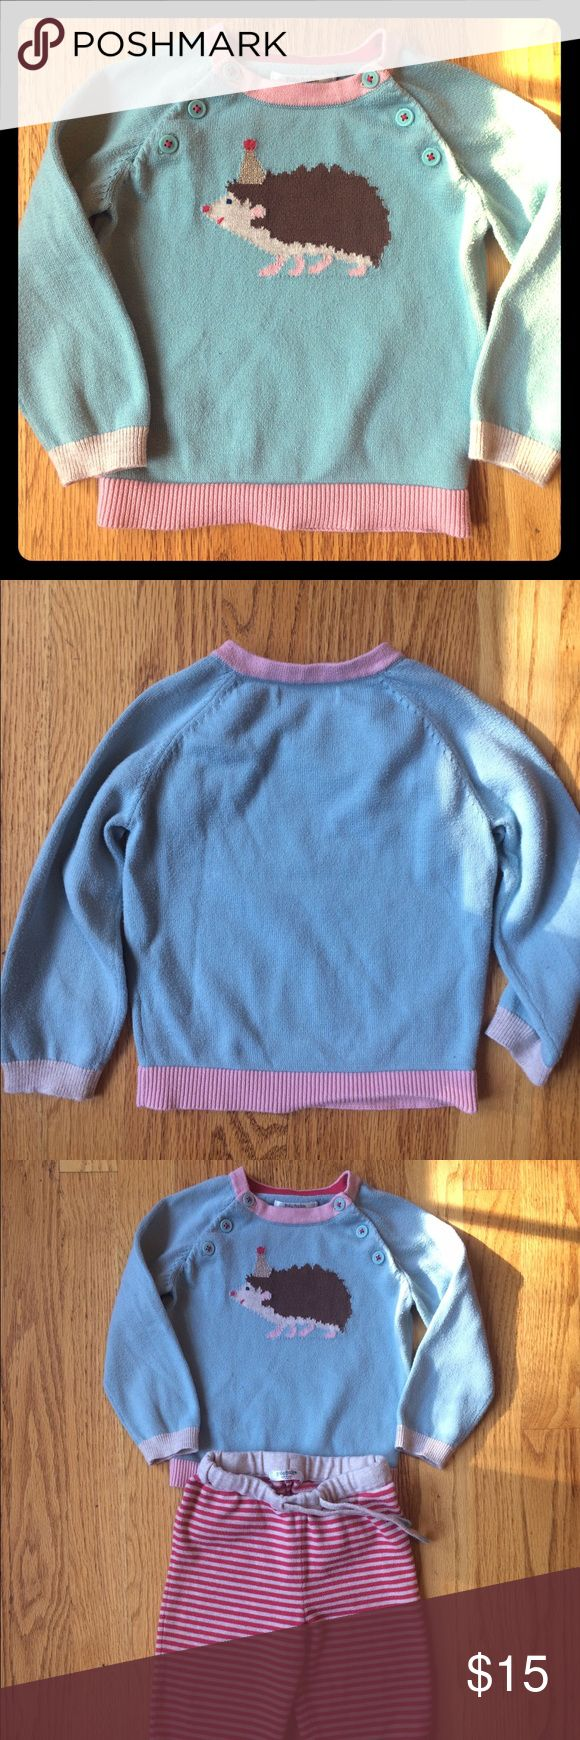 PRICE DROP!! 🎉Baby Boden hedgehog  sweater Gently used baby boden sweater. Only one owner. Some washer wear but no stains, rips, or holes. Looks adorable with the striped Boden pants also in my closet! ❤️ Mini Boden Shirts & Tops Sweaters